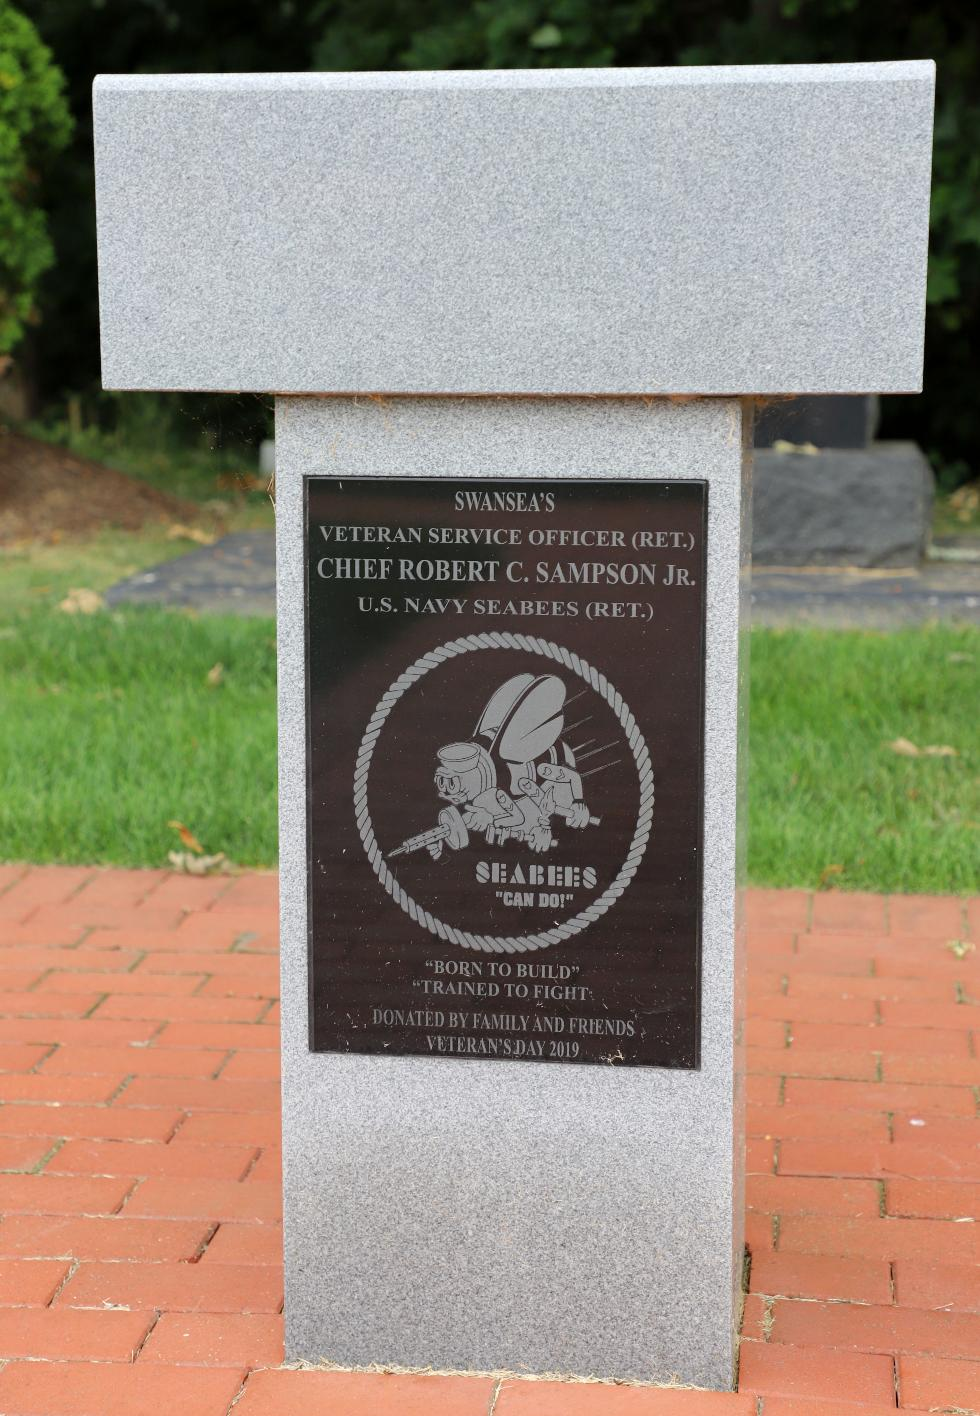 Swansea Mass Veterans Memorial Park - Chief Robert C Sampson Memorial